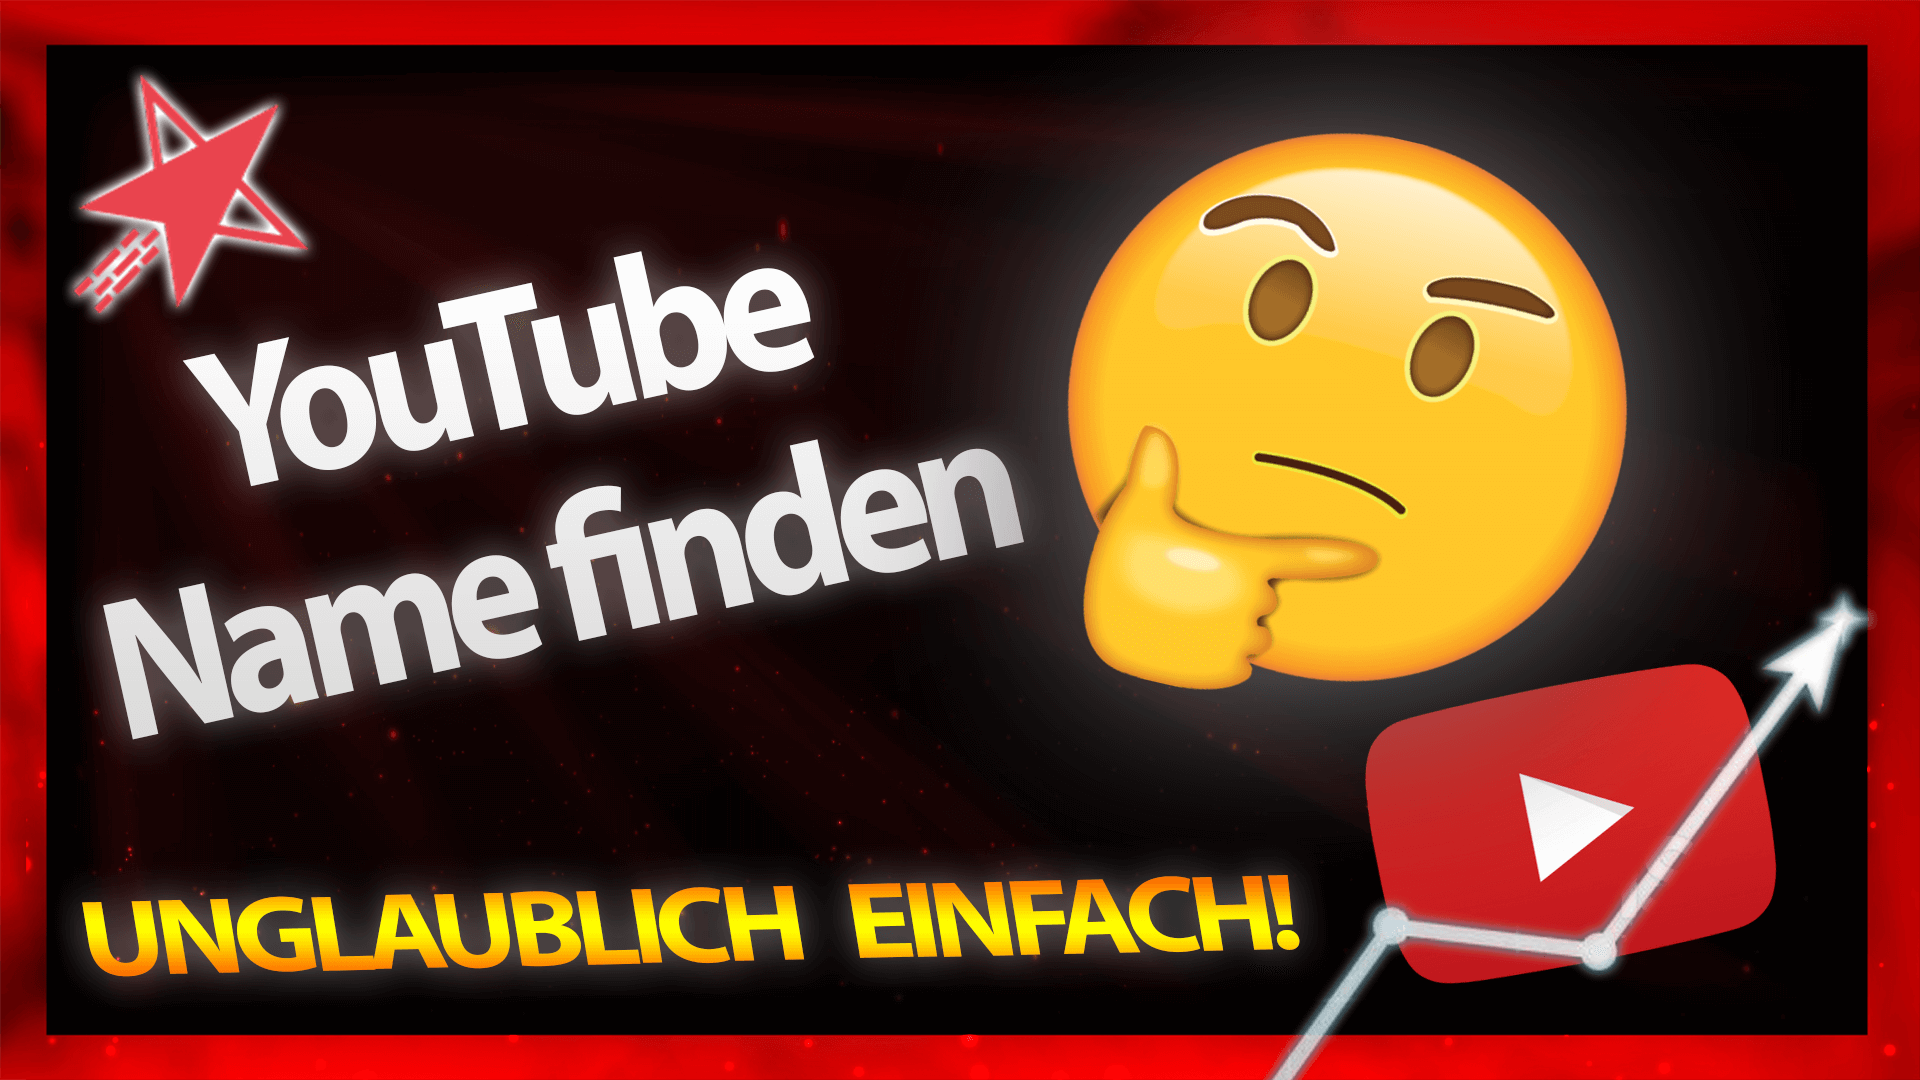 kanalname finden youtube